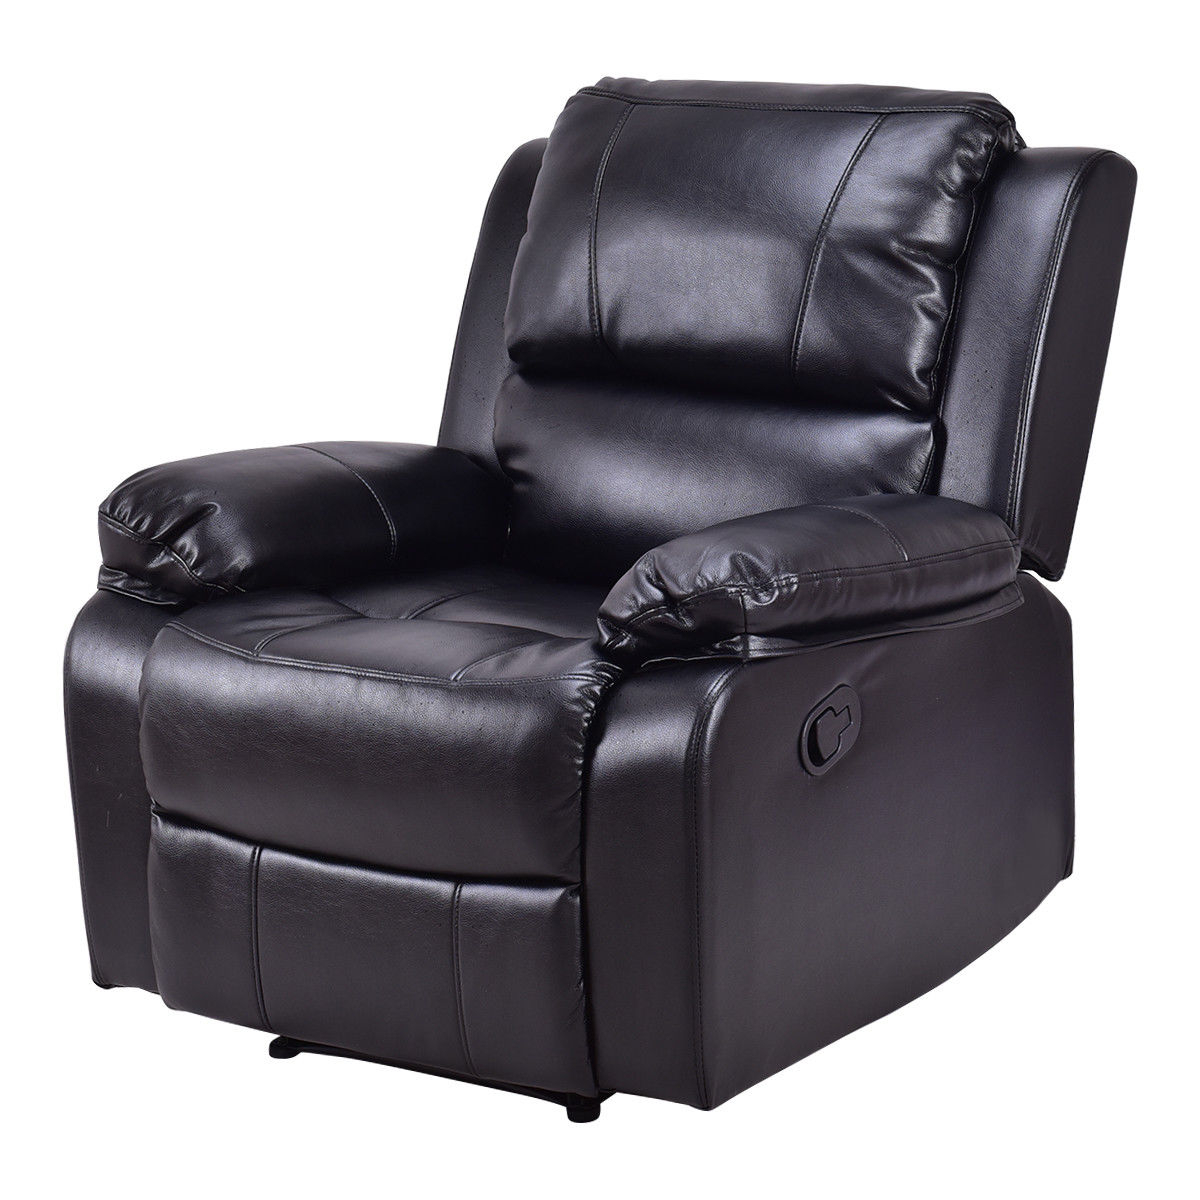 Famous Recliner Sofa Chairs Throughout Costway: Costway Manual Recliner Sofa Lounge Chair Pu Leather Home (View 3 of 20)